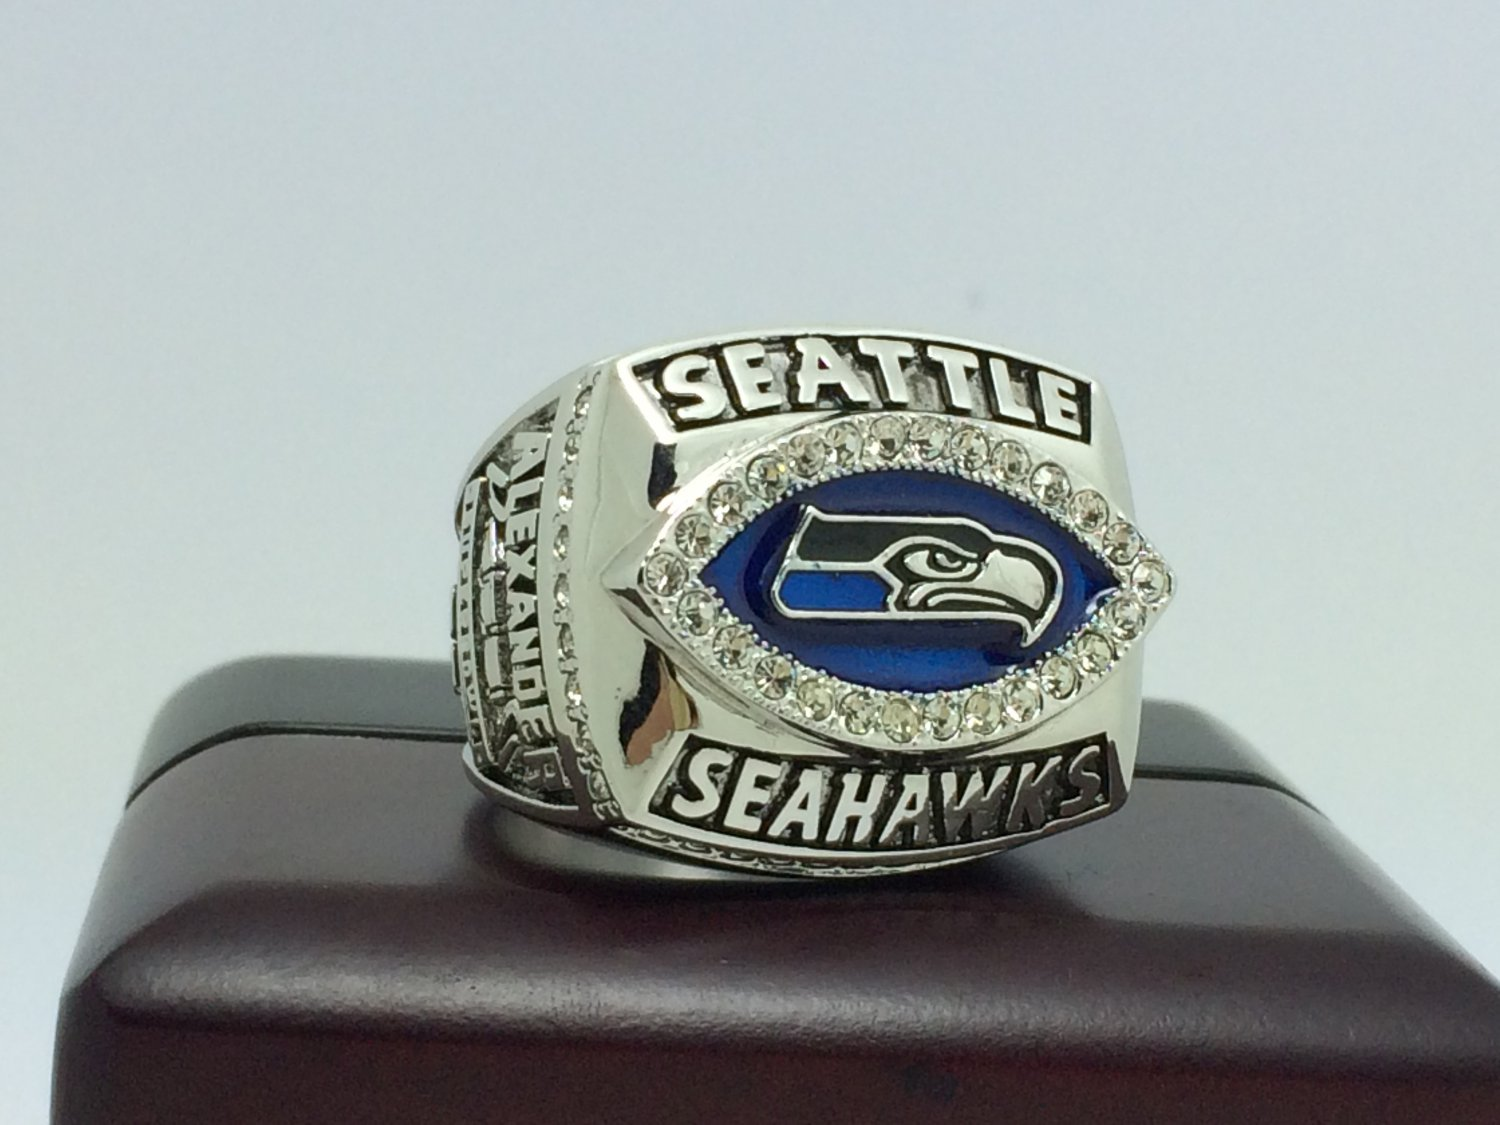 2005 Seattle Seahawks NFC super bowl Championship Ring 8-14 Size choose With wooden box